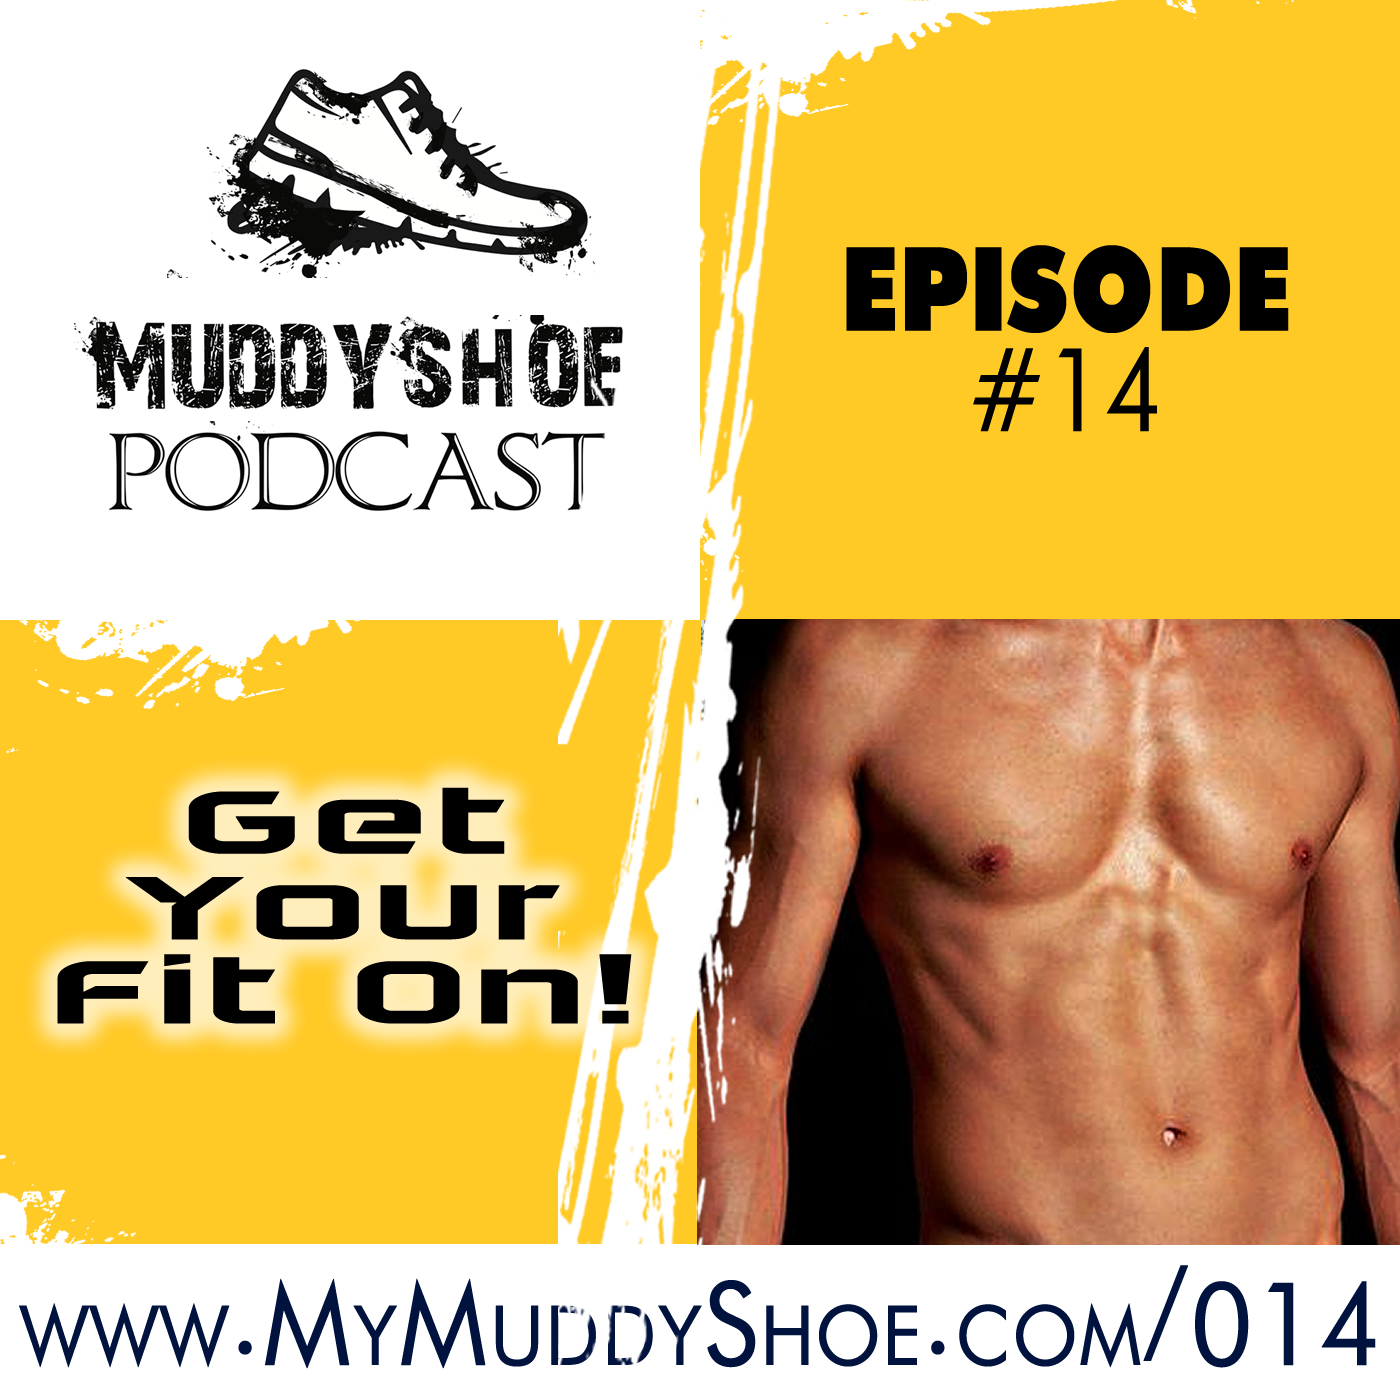 The Muddy Shoe #14 - Get Your Fit On With This 8 Week Full Body Functional Workout!